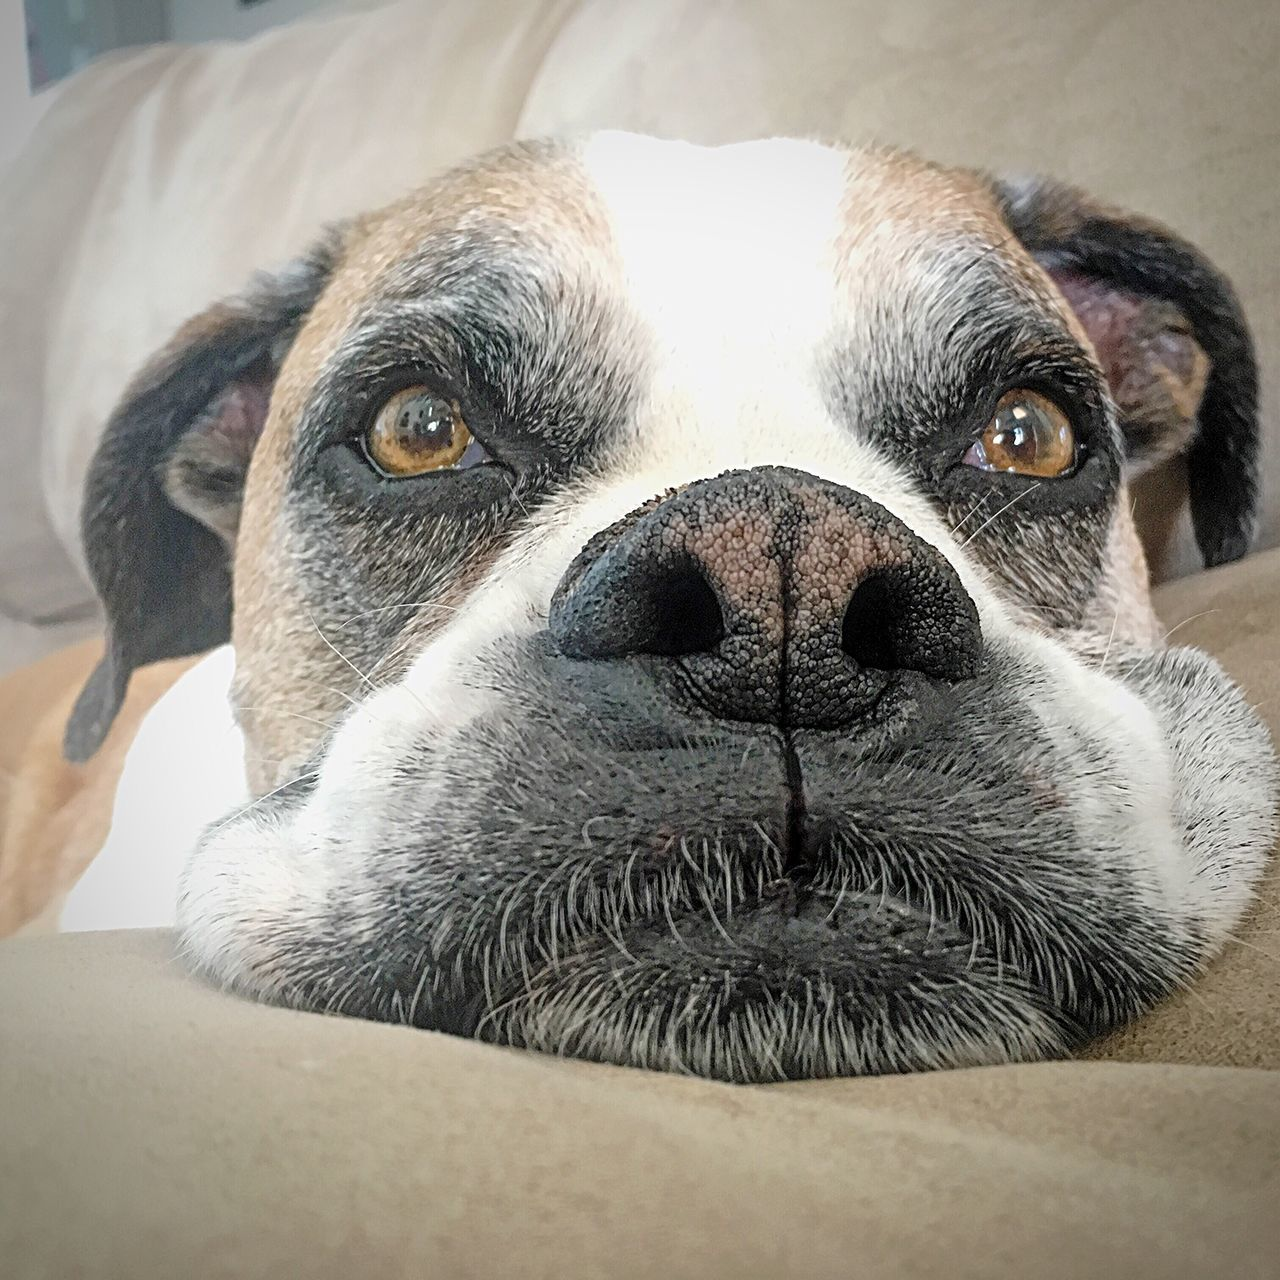 Monday mood // Pets Animal Themes Dog Domestic Animals One Animal Looking At Camera Close-up Portrait Indoors  Animal Head  Front View Mammal Focus On Foreground Animal Nose Whisker No People Looking Boxer Monday Mood